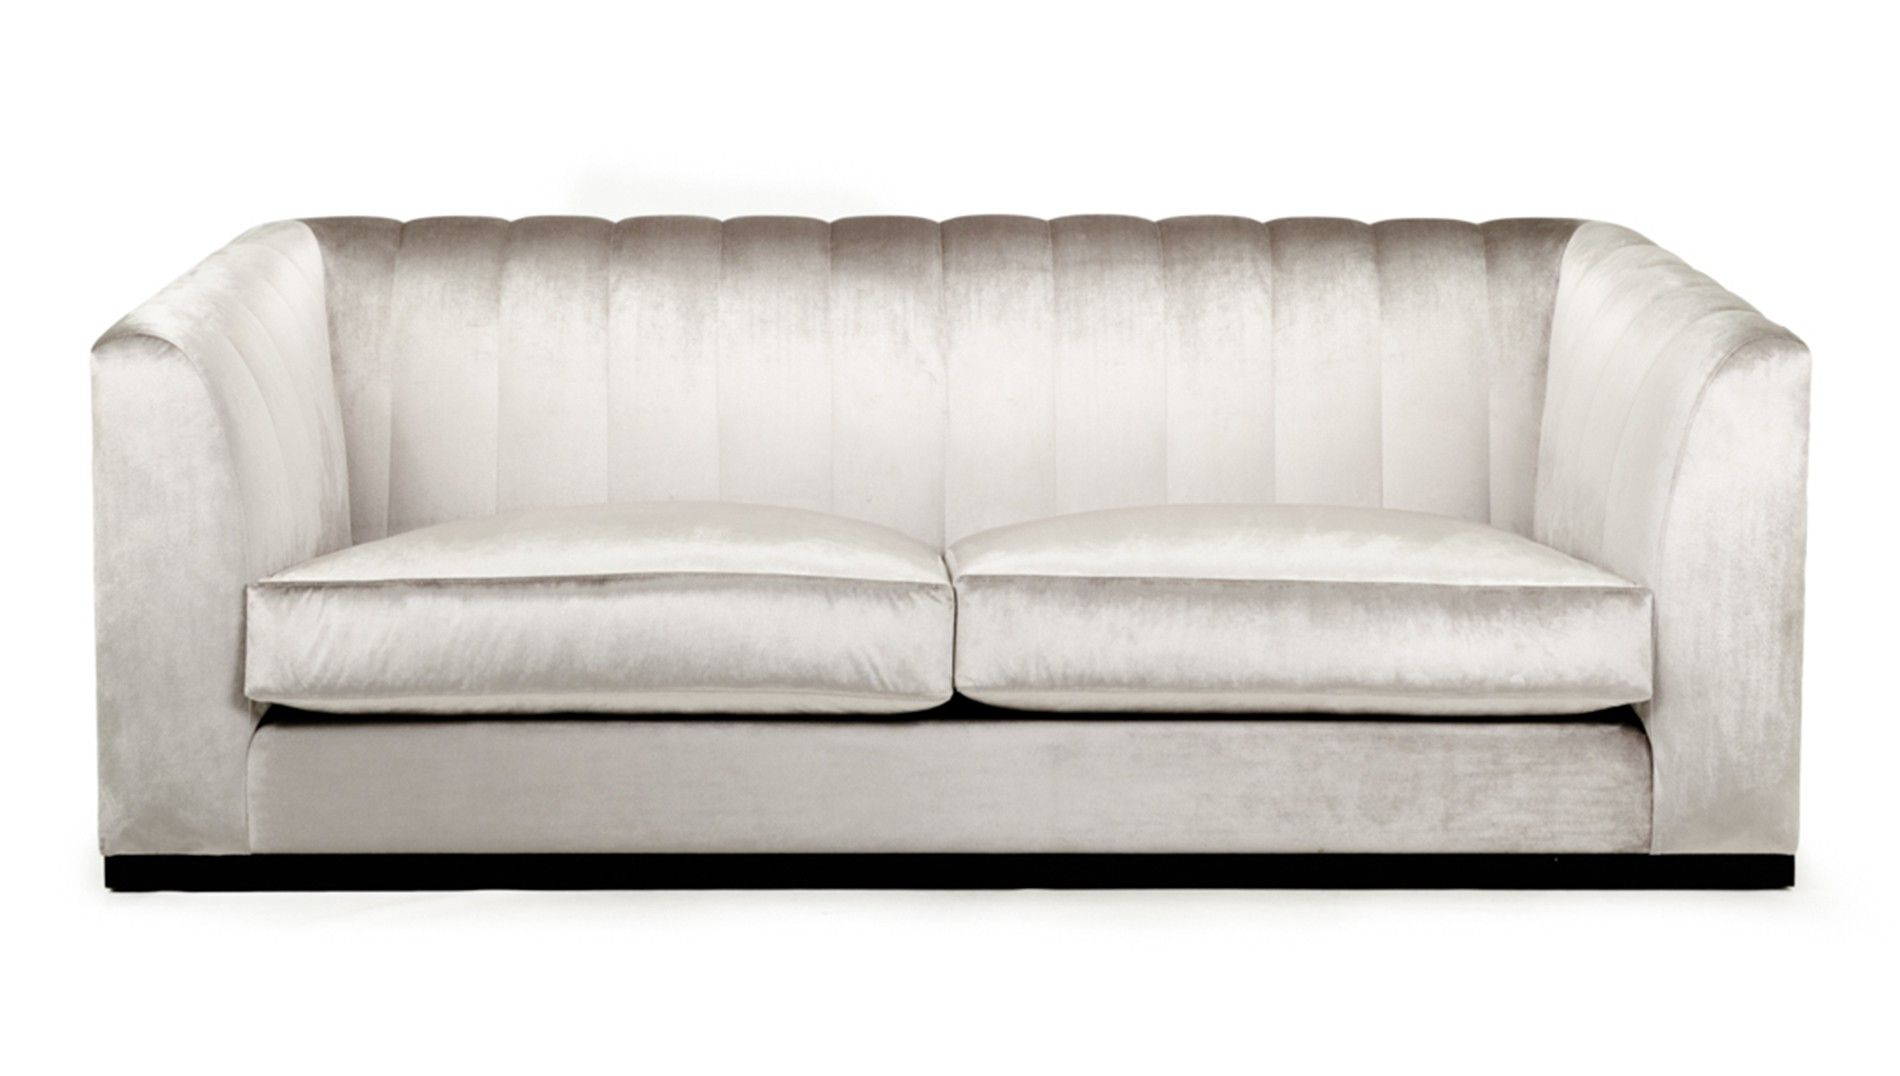 Take a look at the Dorchester Sofa at LuxDeco